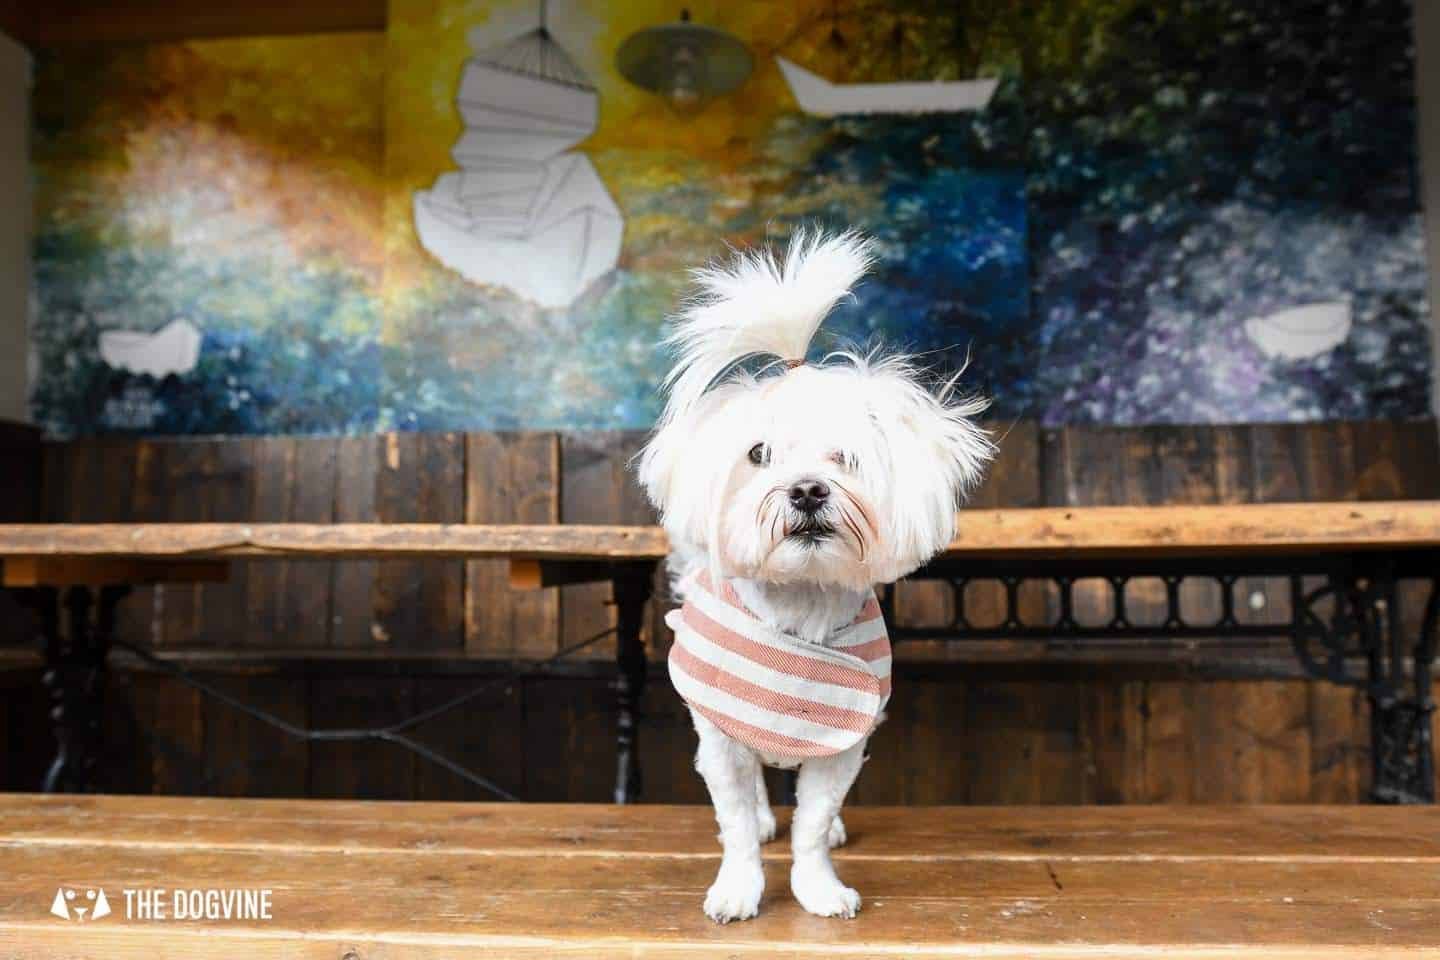 The Best of Dog-friendly St Johns by Milo the Maltese - Dog-friendly London